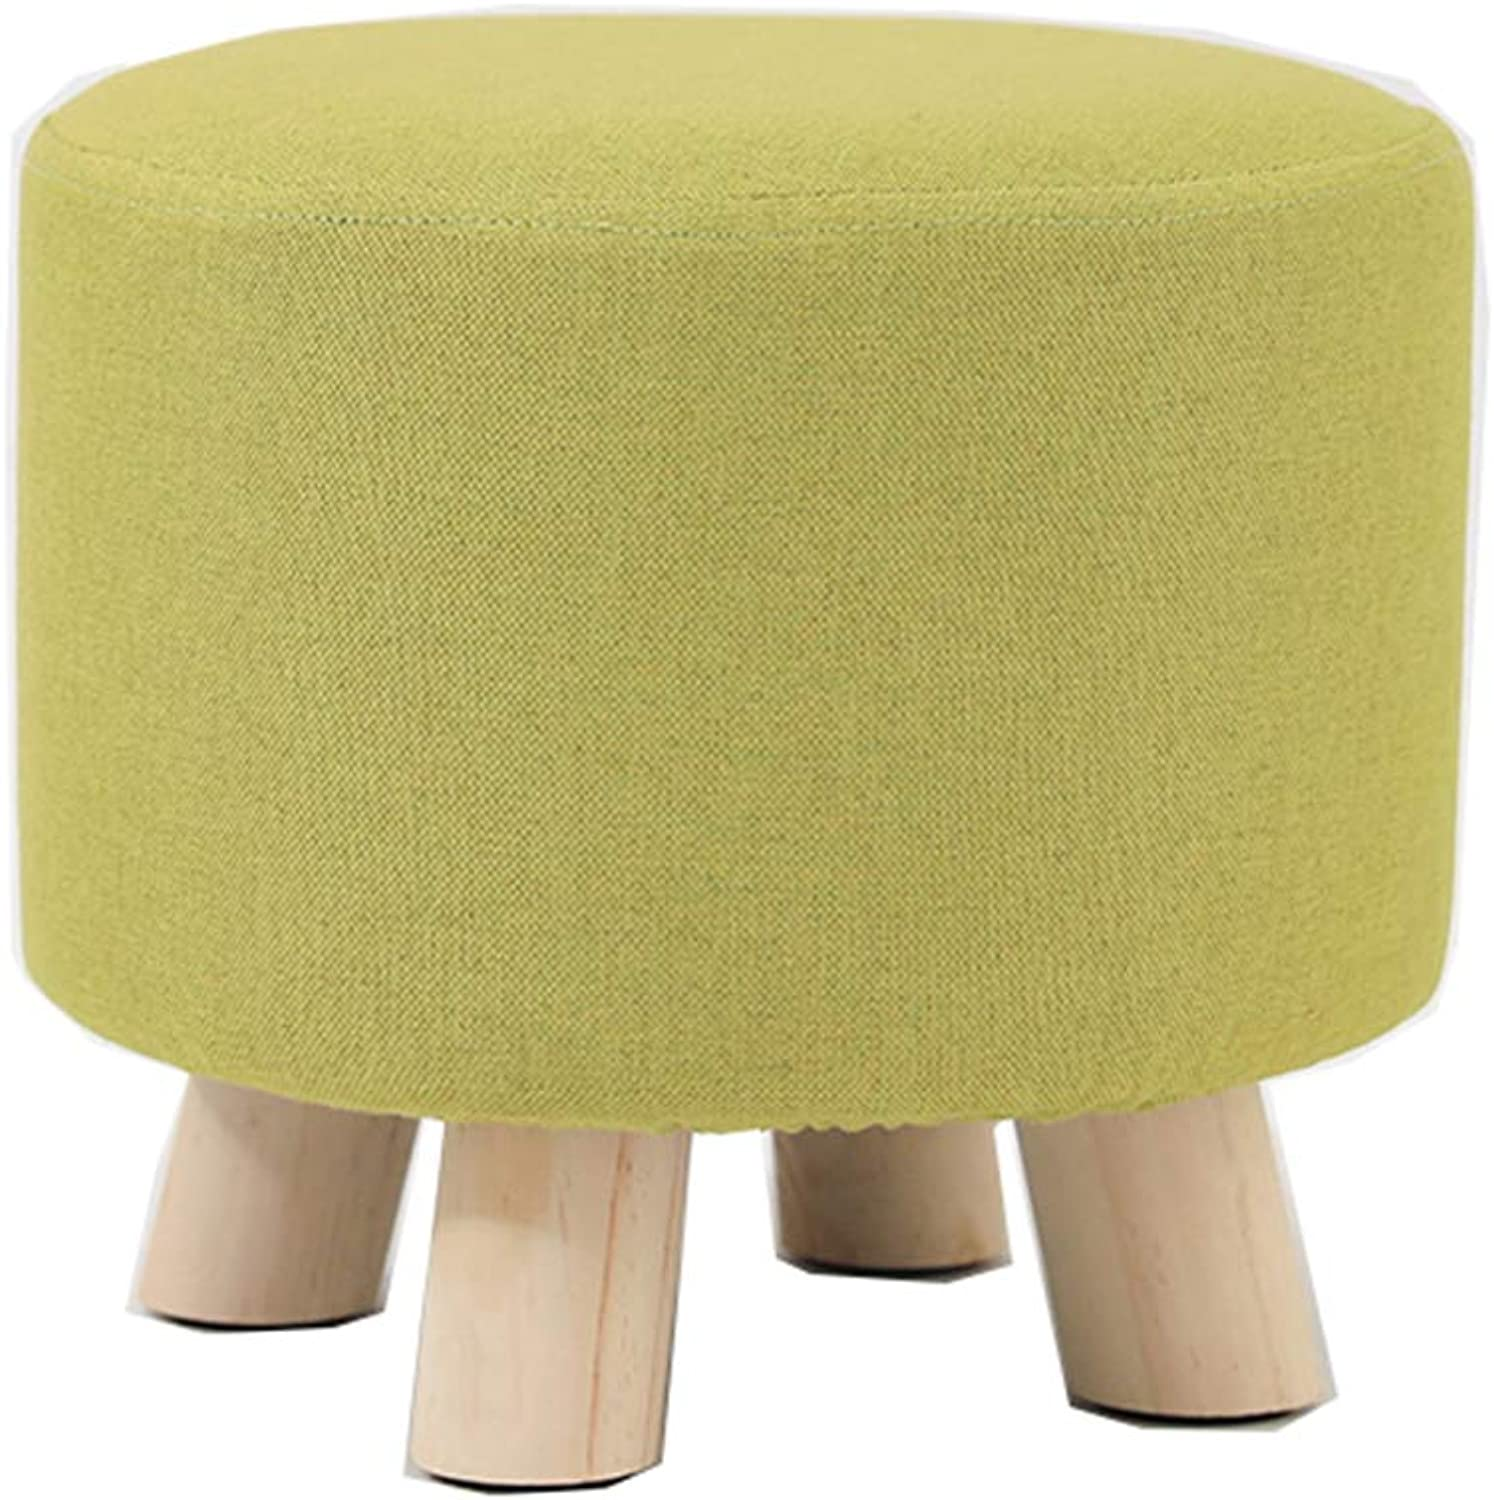 Small Stool-Living Room Small Bench Fashion Sofa Stool Creative Wear shoes Bench Fabric Stool Home